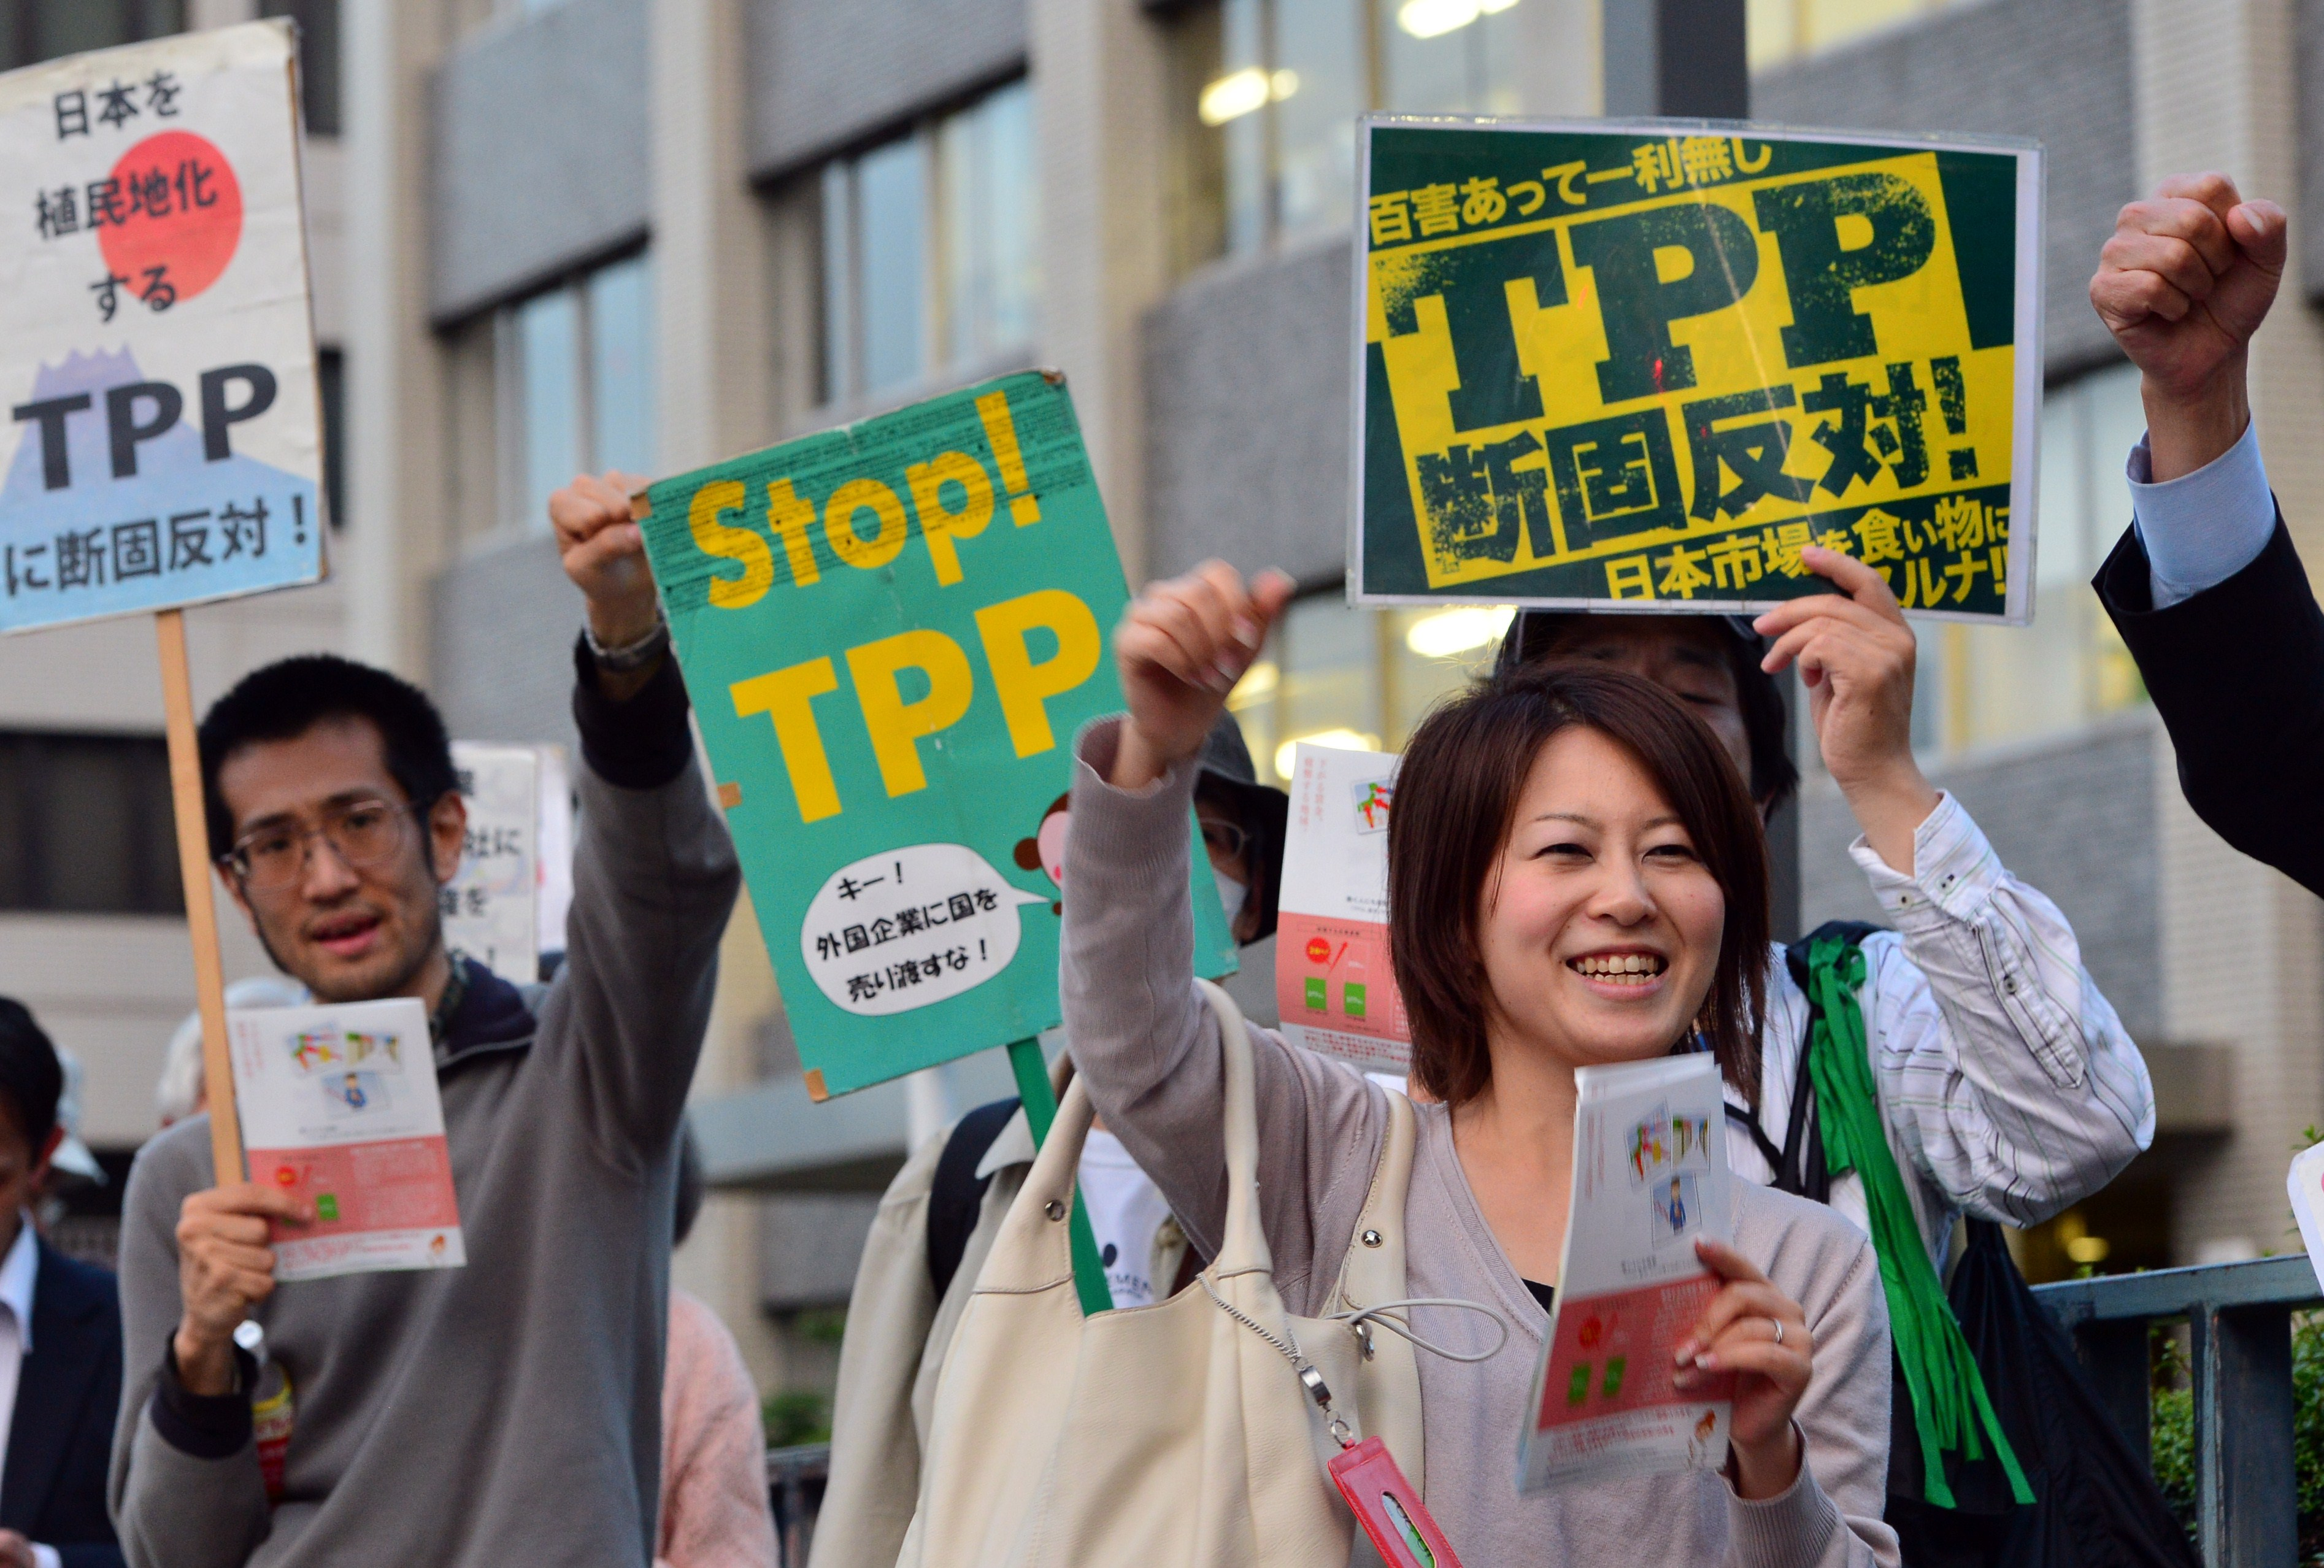 These protesters in Japan aren't happy with the massive proposed trade deal.